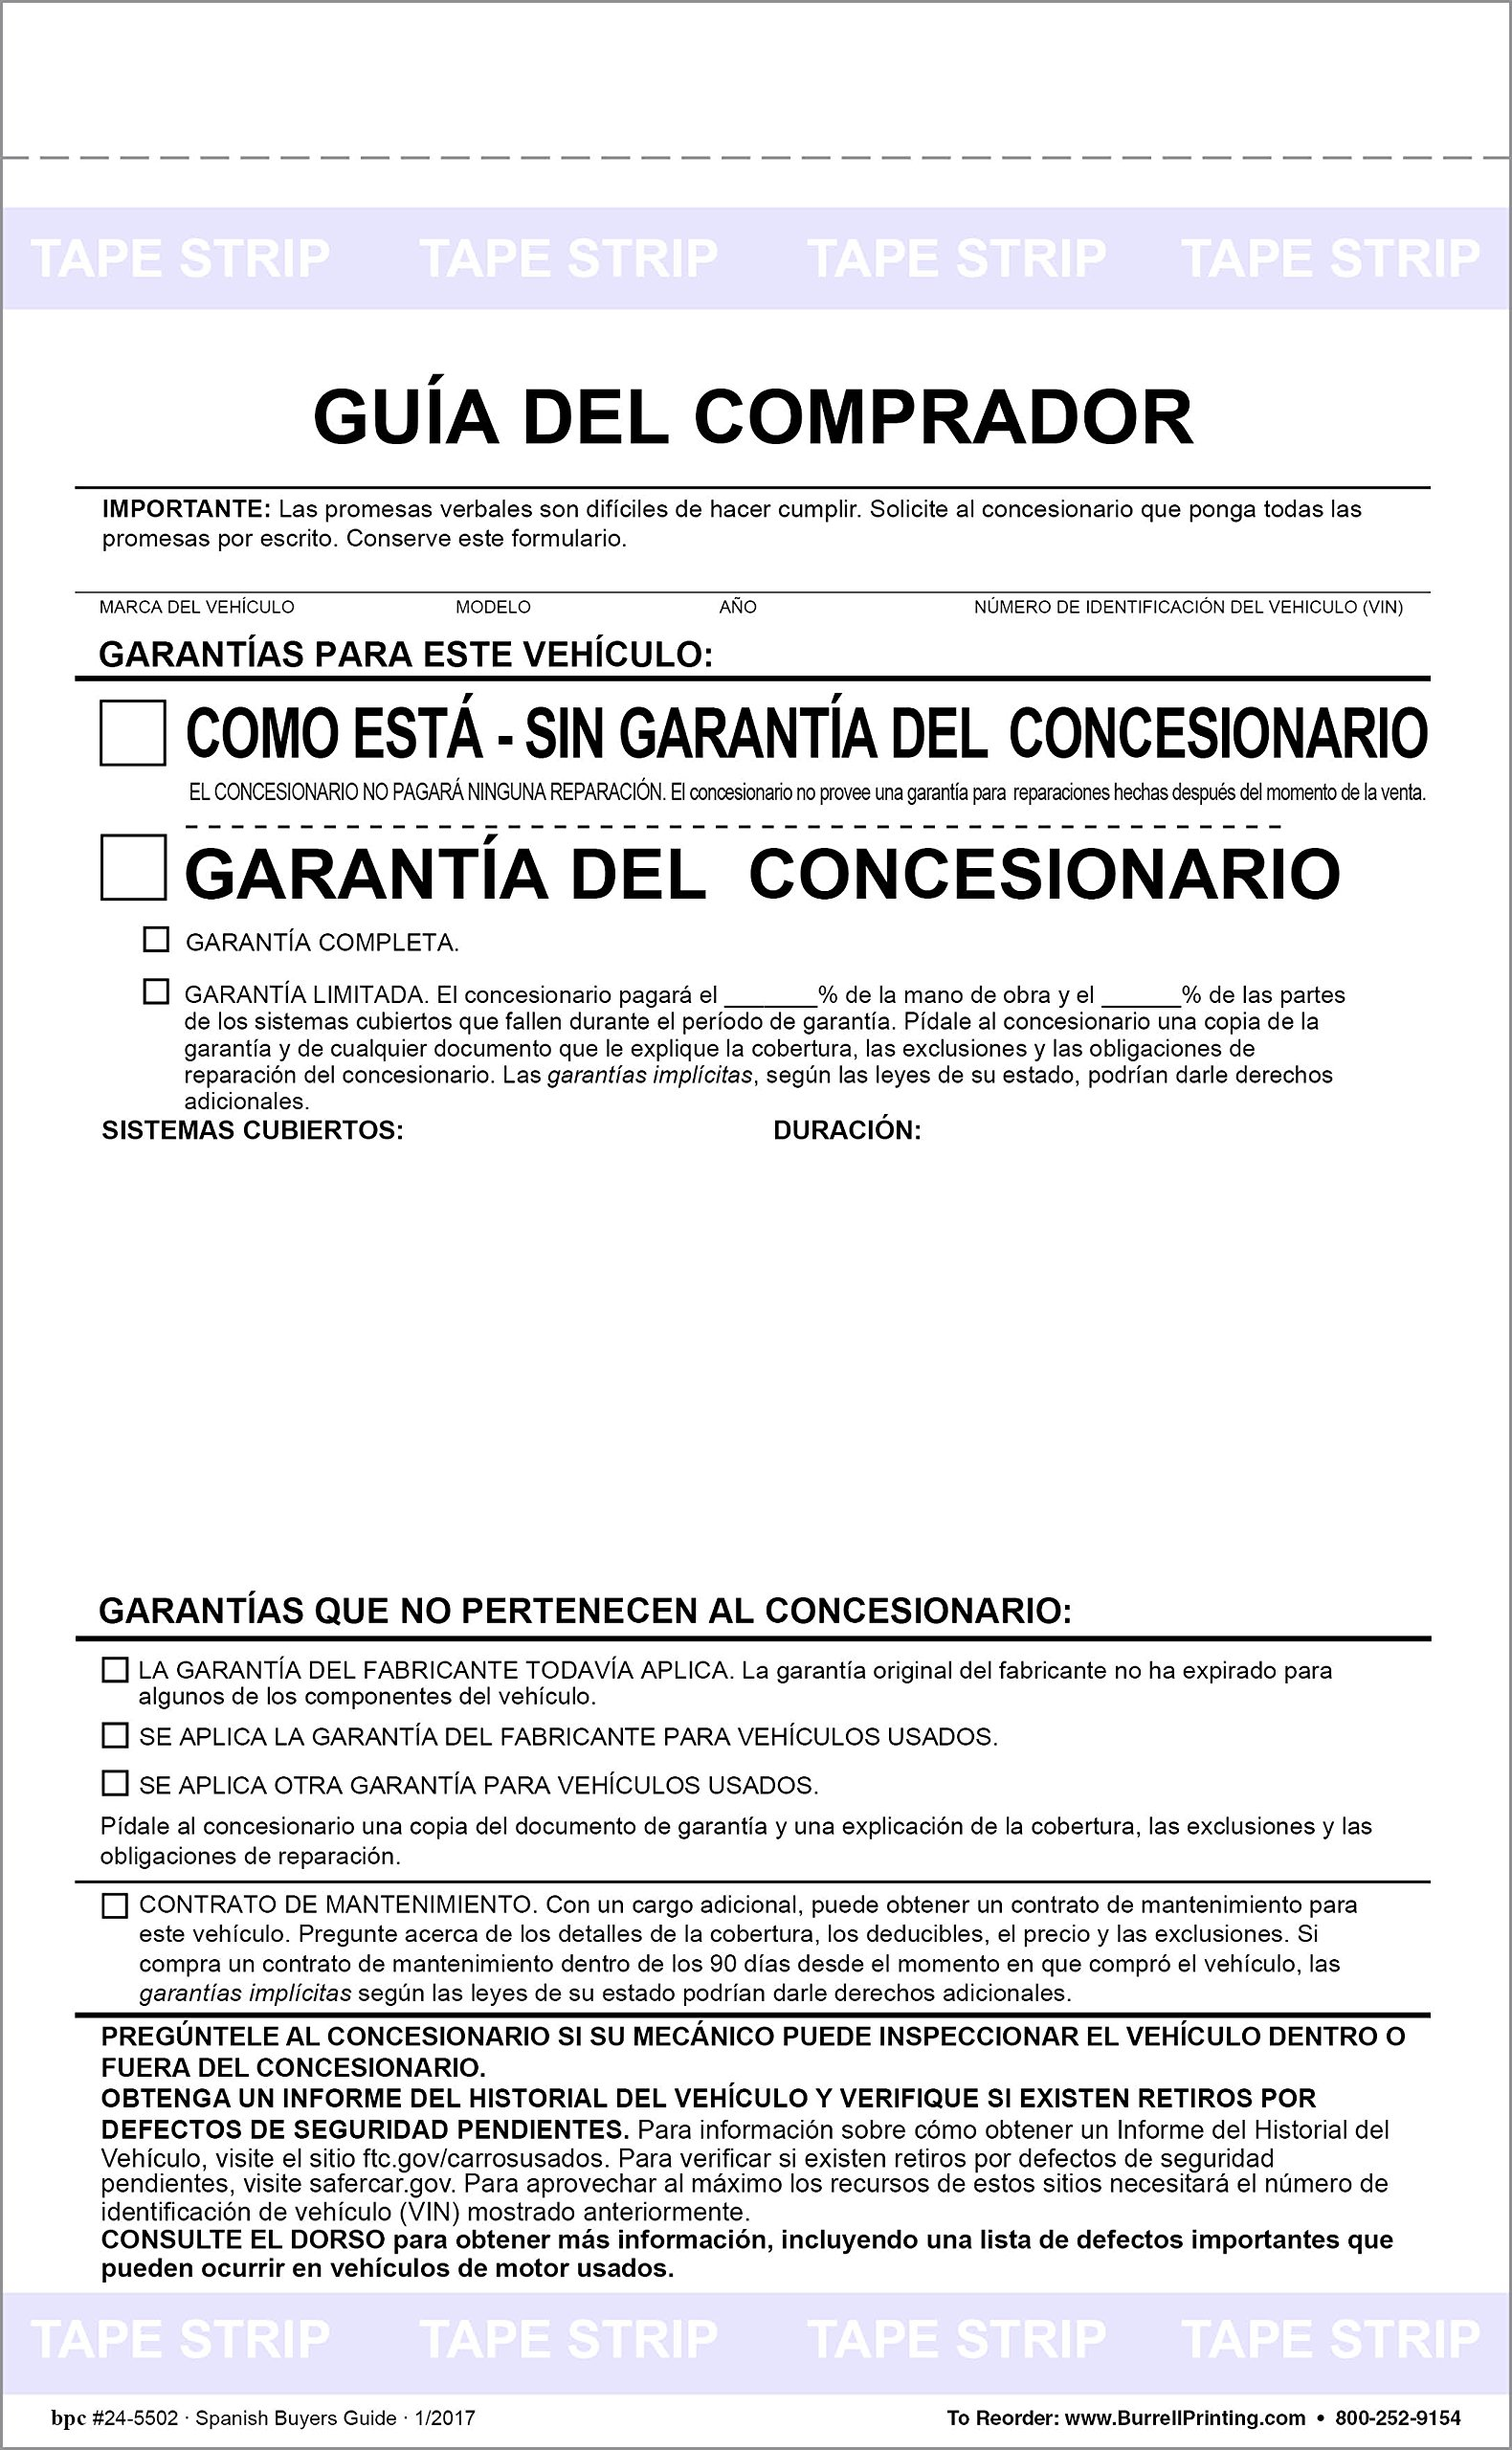 Buyers Guide Form - Adhesive Tape - Spanish - As is - Warranty Pack of 100 Forms by Burrell Printing (Image #1)